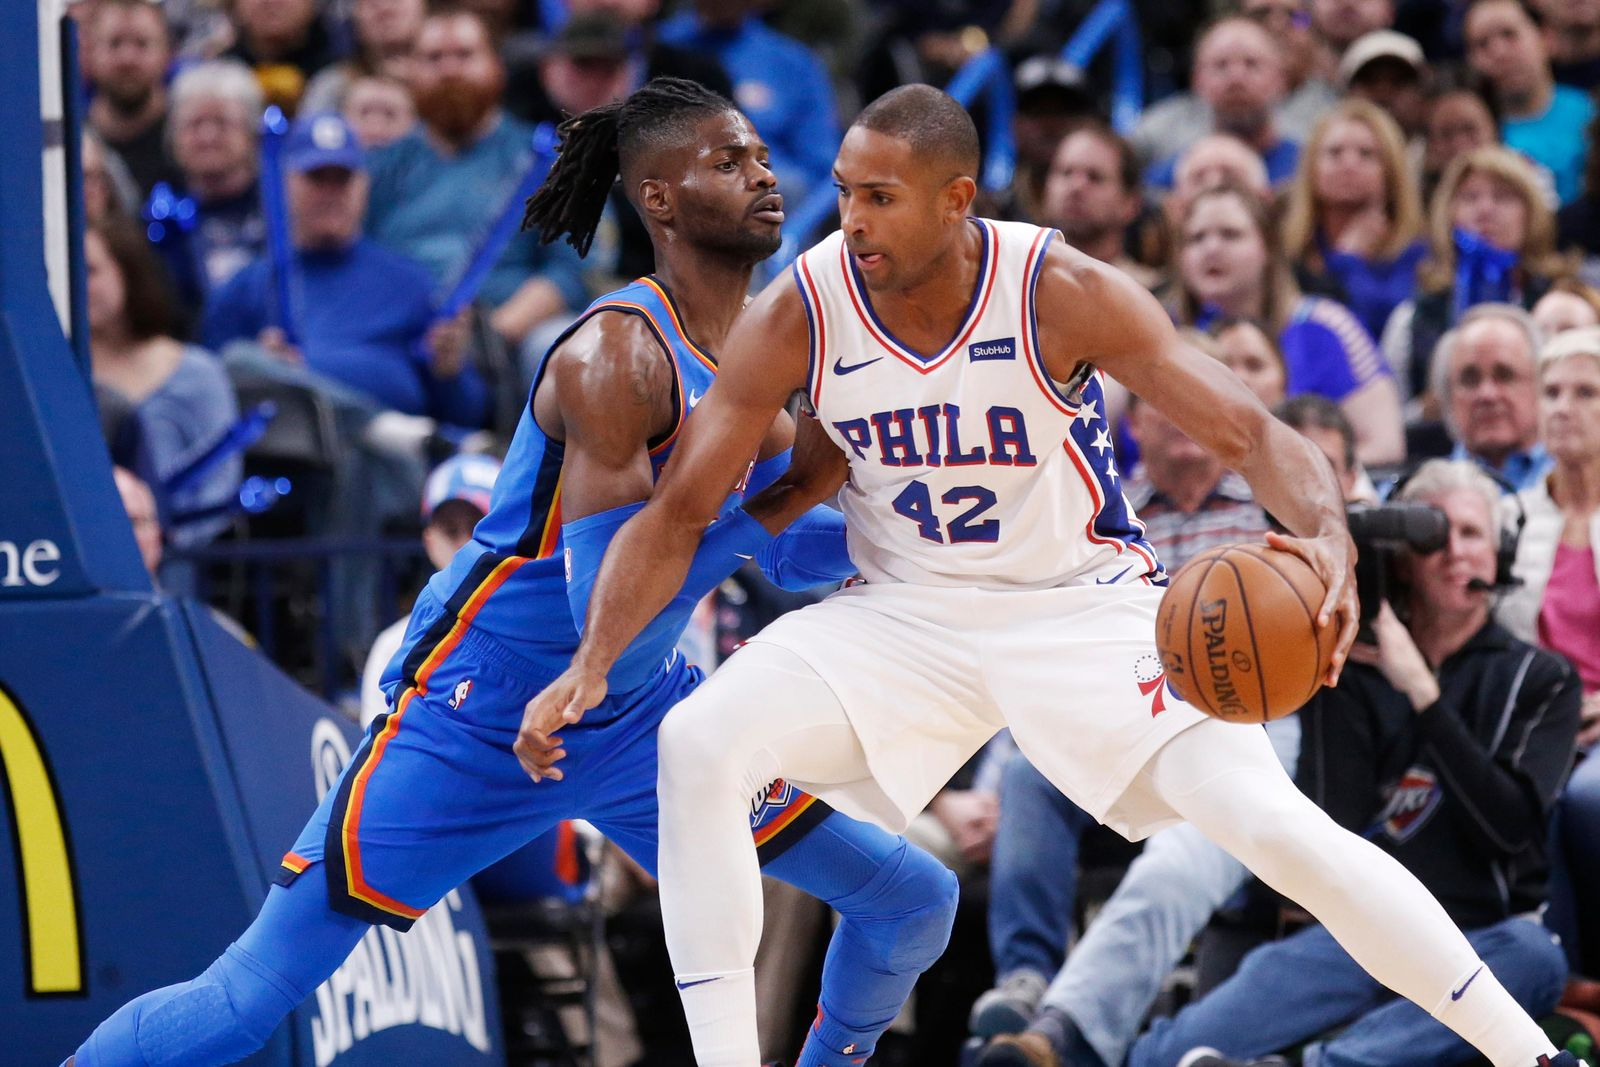 Philadelphia 76ers forward Al Horford (42) drives against Oklahoma City Thunder forward Nerlens Noel during the first half of an NBA basketball game Friday, Nov. 15, 2019, in Oklahoma City. (AP Photo/Sue Ogrocki)